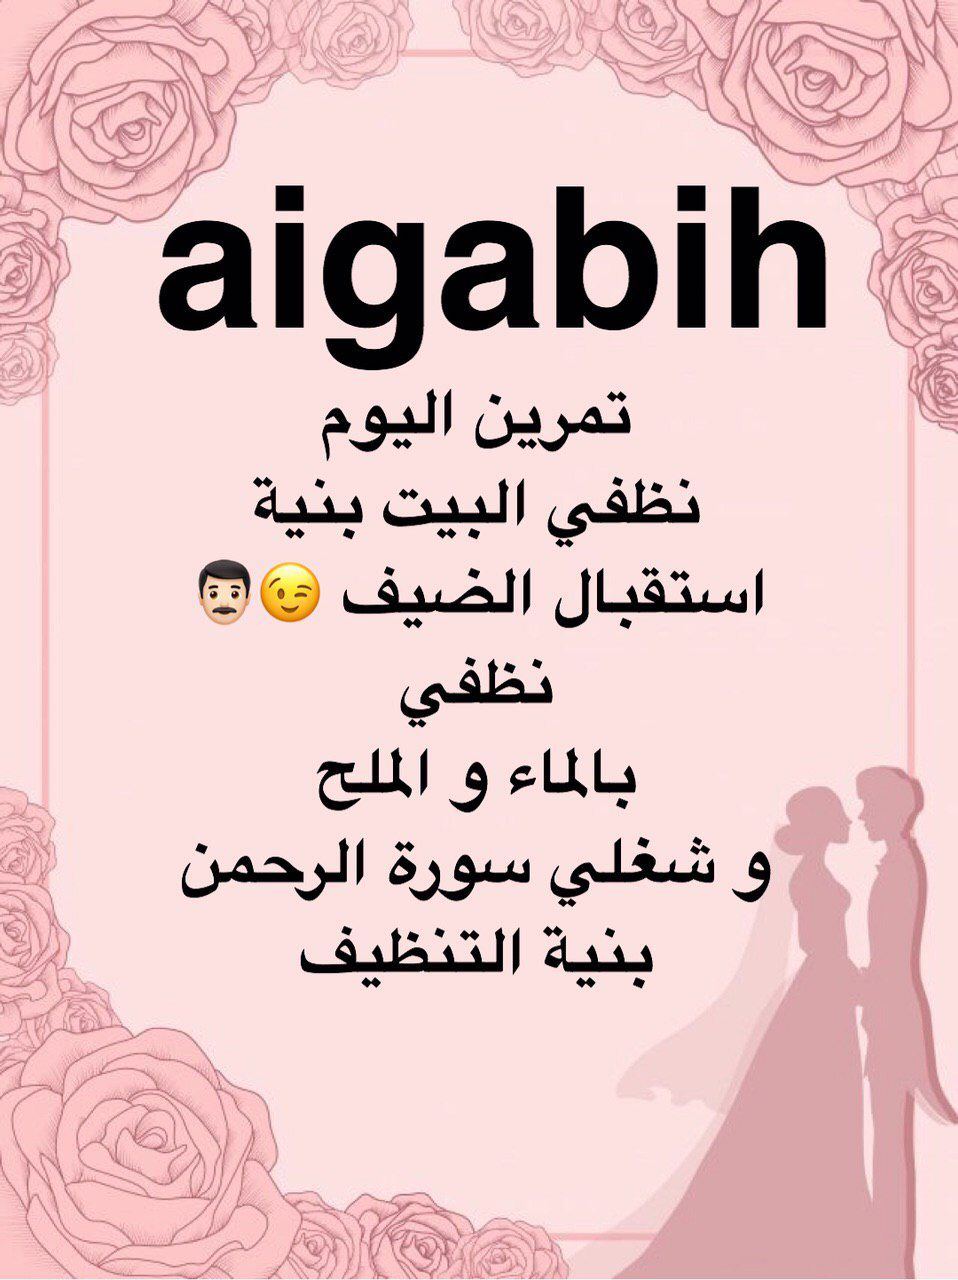 Pin By Nwayer On طاقه ايجابيه Beautiful Quotes Positive Notes Women Motivation